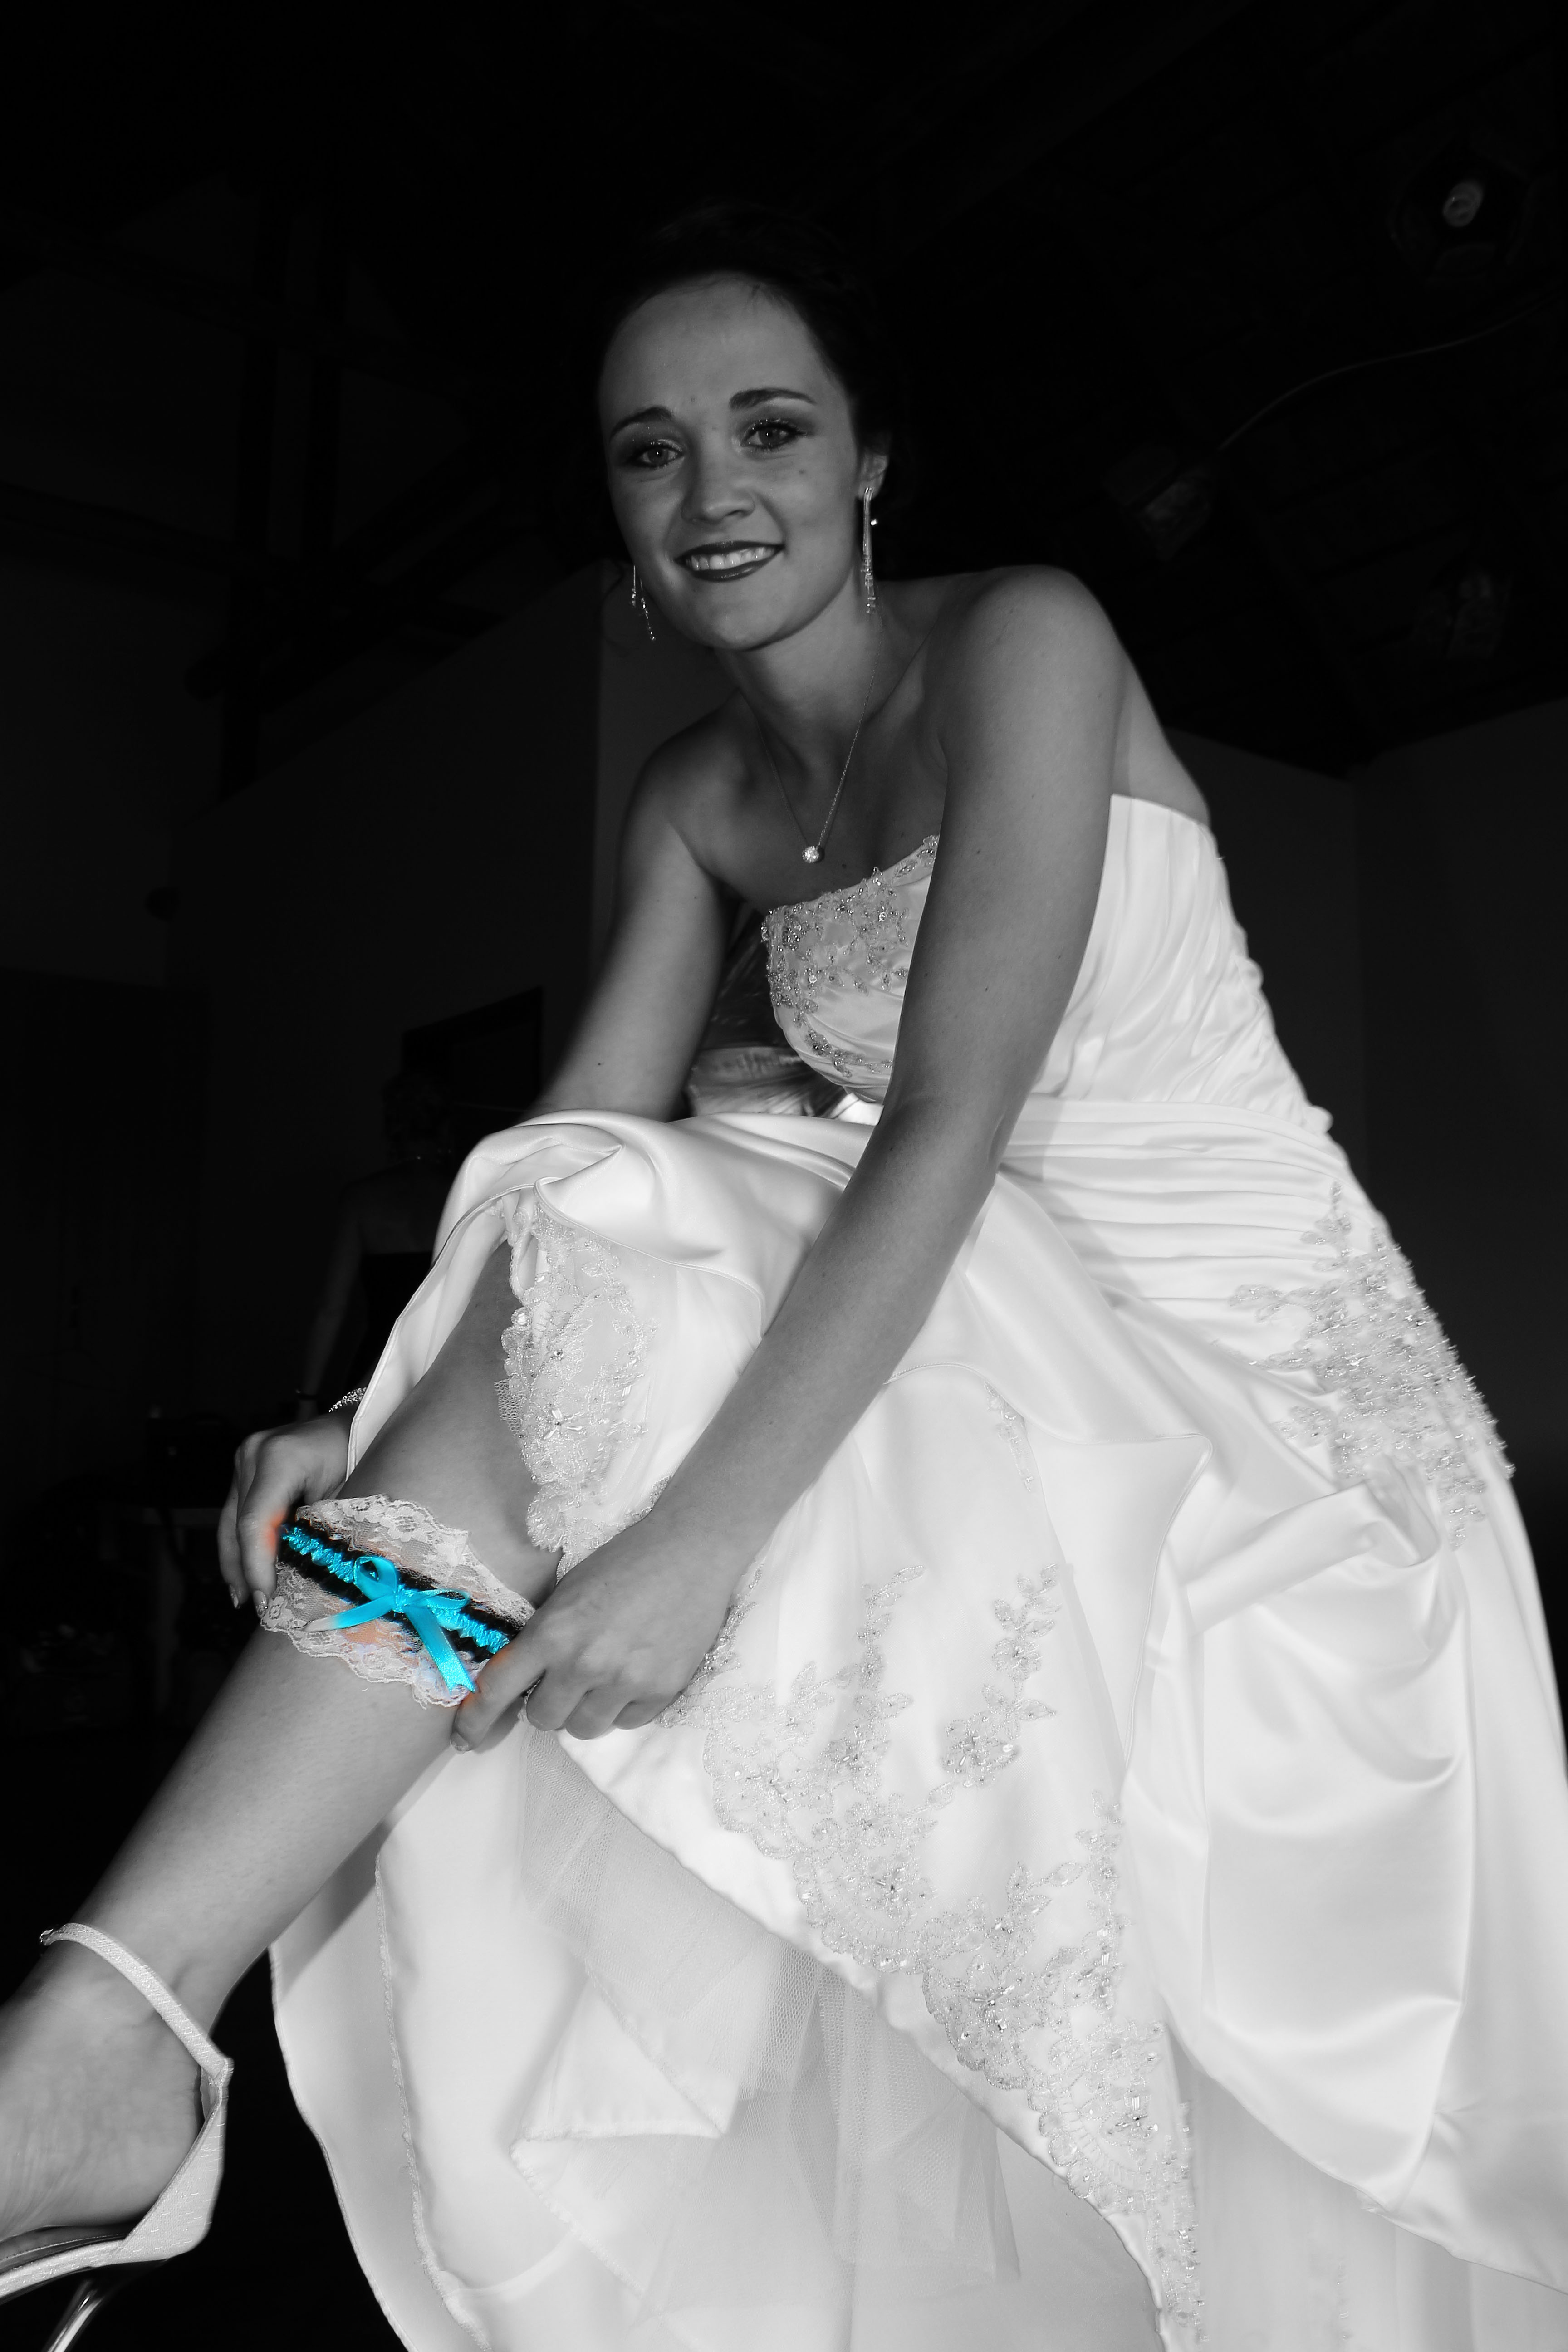 Wearing Garter Wedding Photography | Photoshoots Pretoria